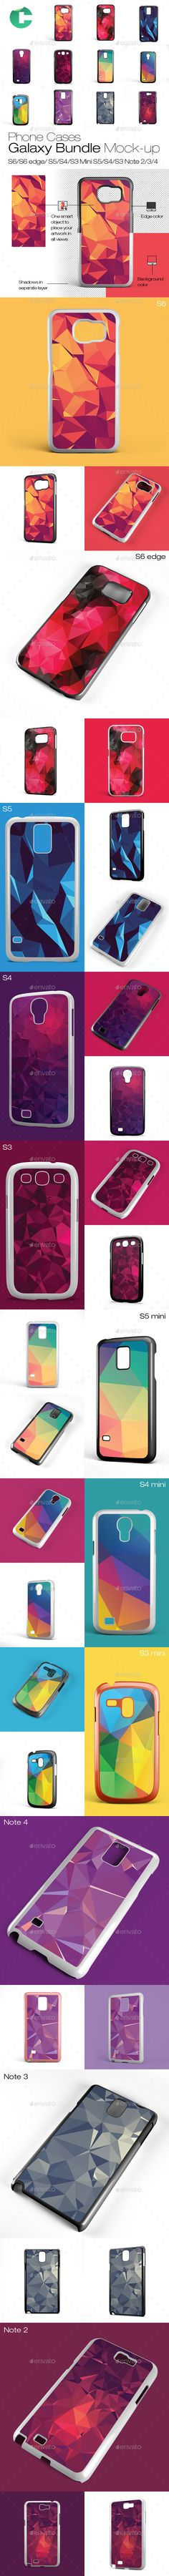 Galaxy Pack Cases mock-up - 2d sublimation cases - Mobile Displays